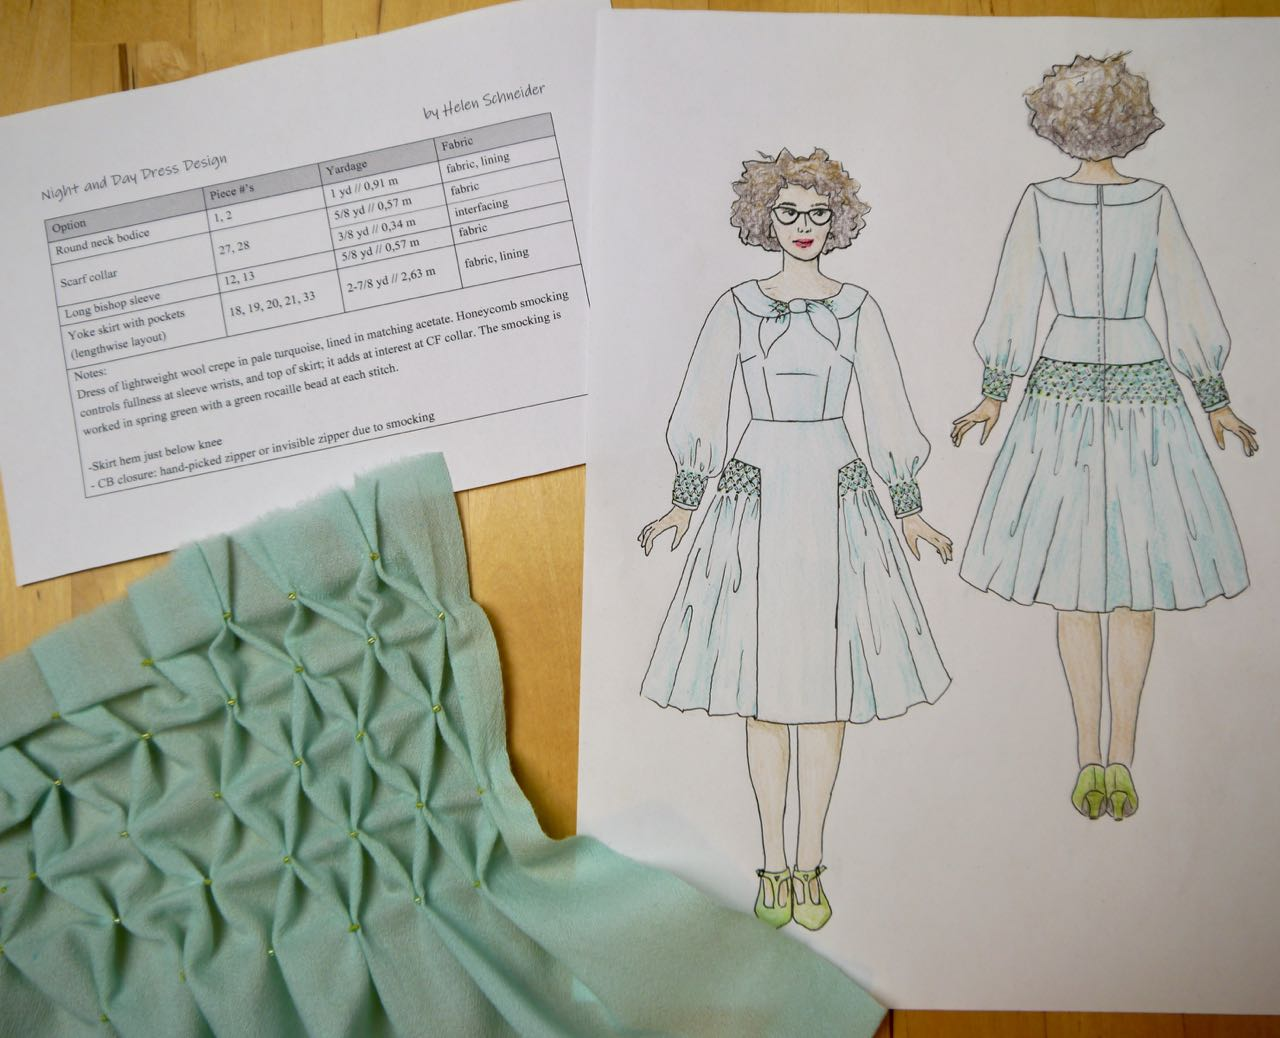 Smocked Night and Day Dress Contest Entry - Button & Snap